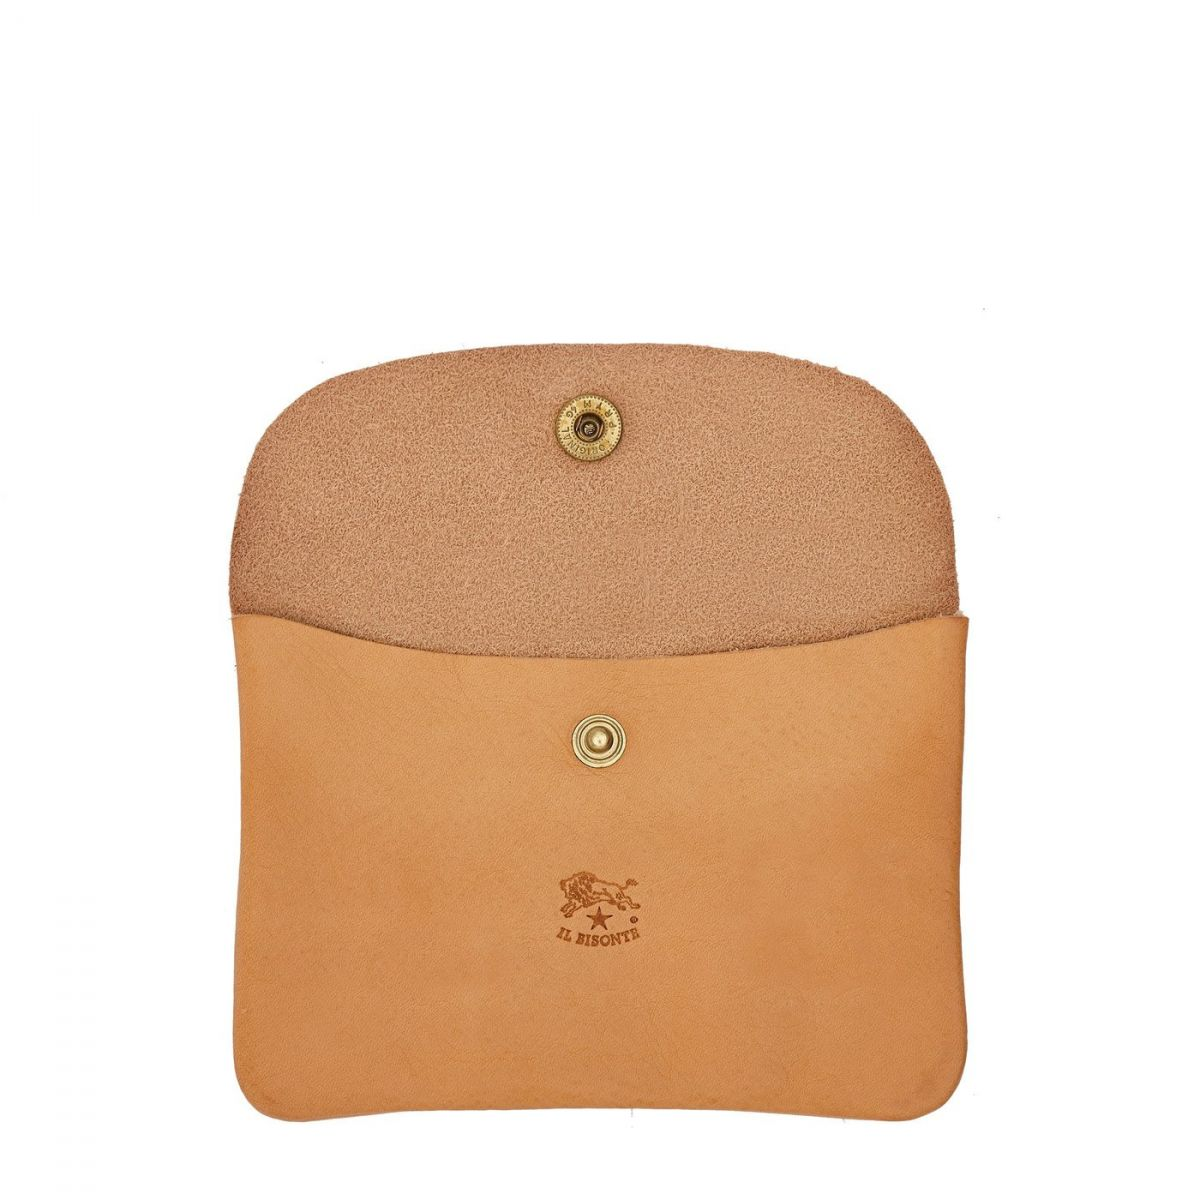 Case  in Cowhide Double Leather SCA008 color Natural | Details